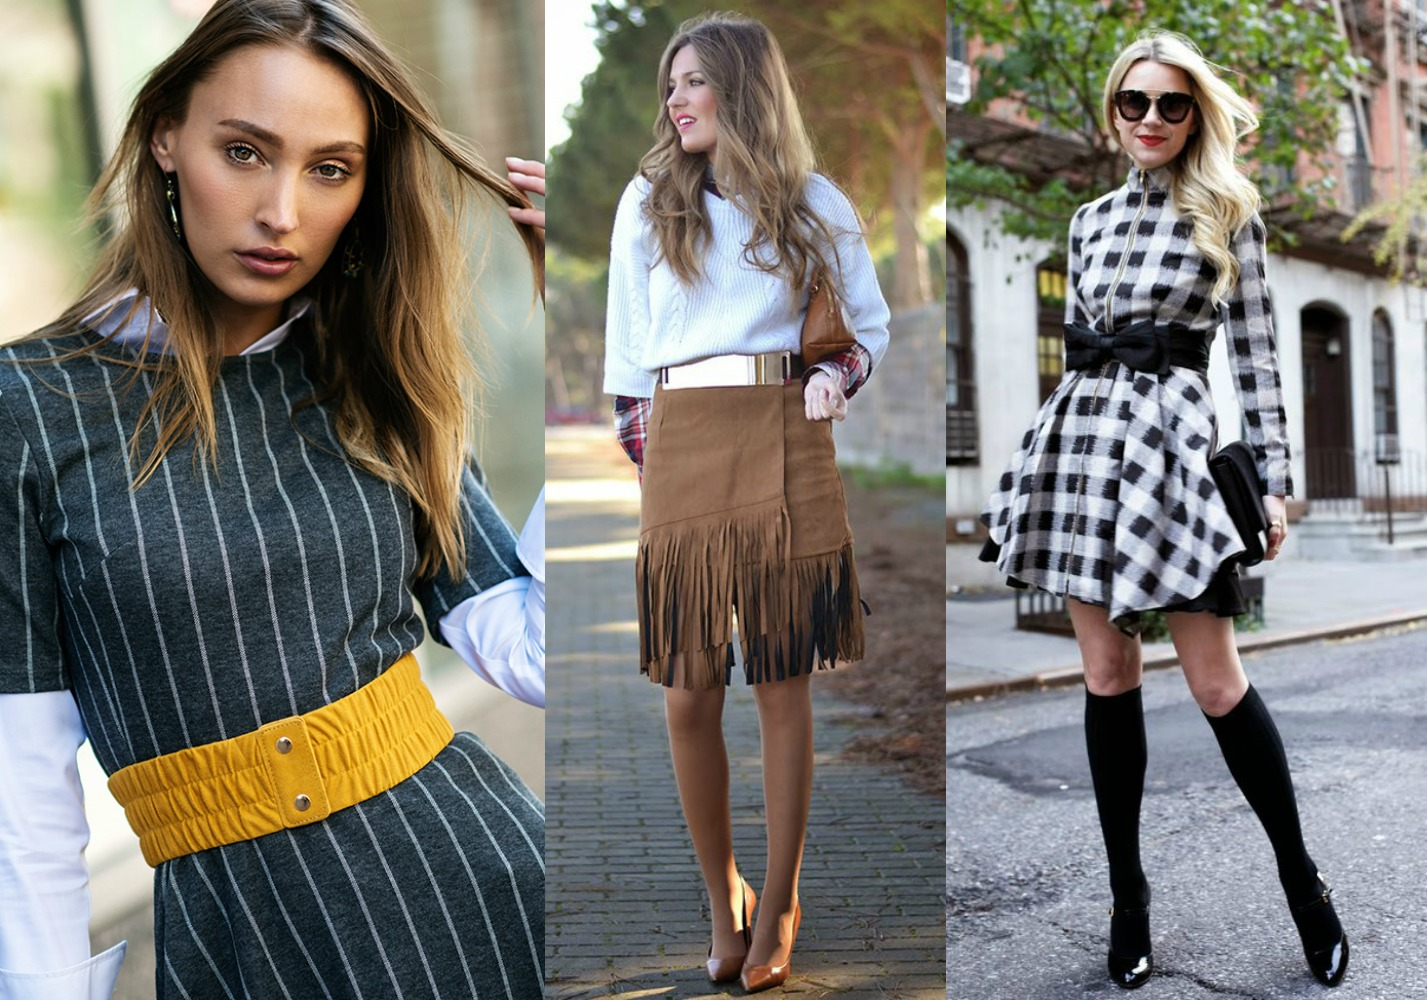 Belts-7 10 Chic Back to School Accessories That Every Girl Must Own